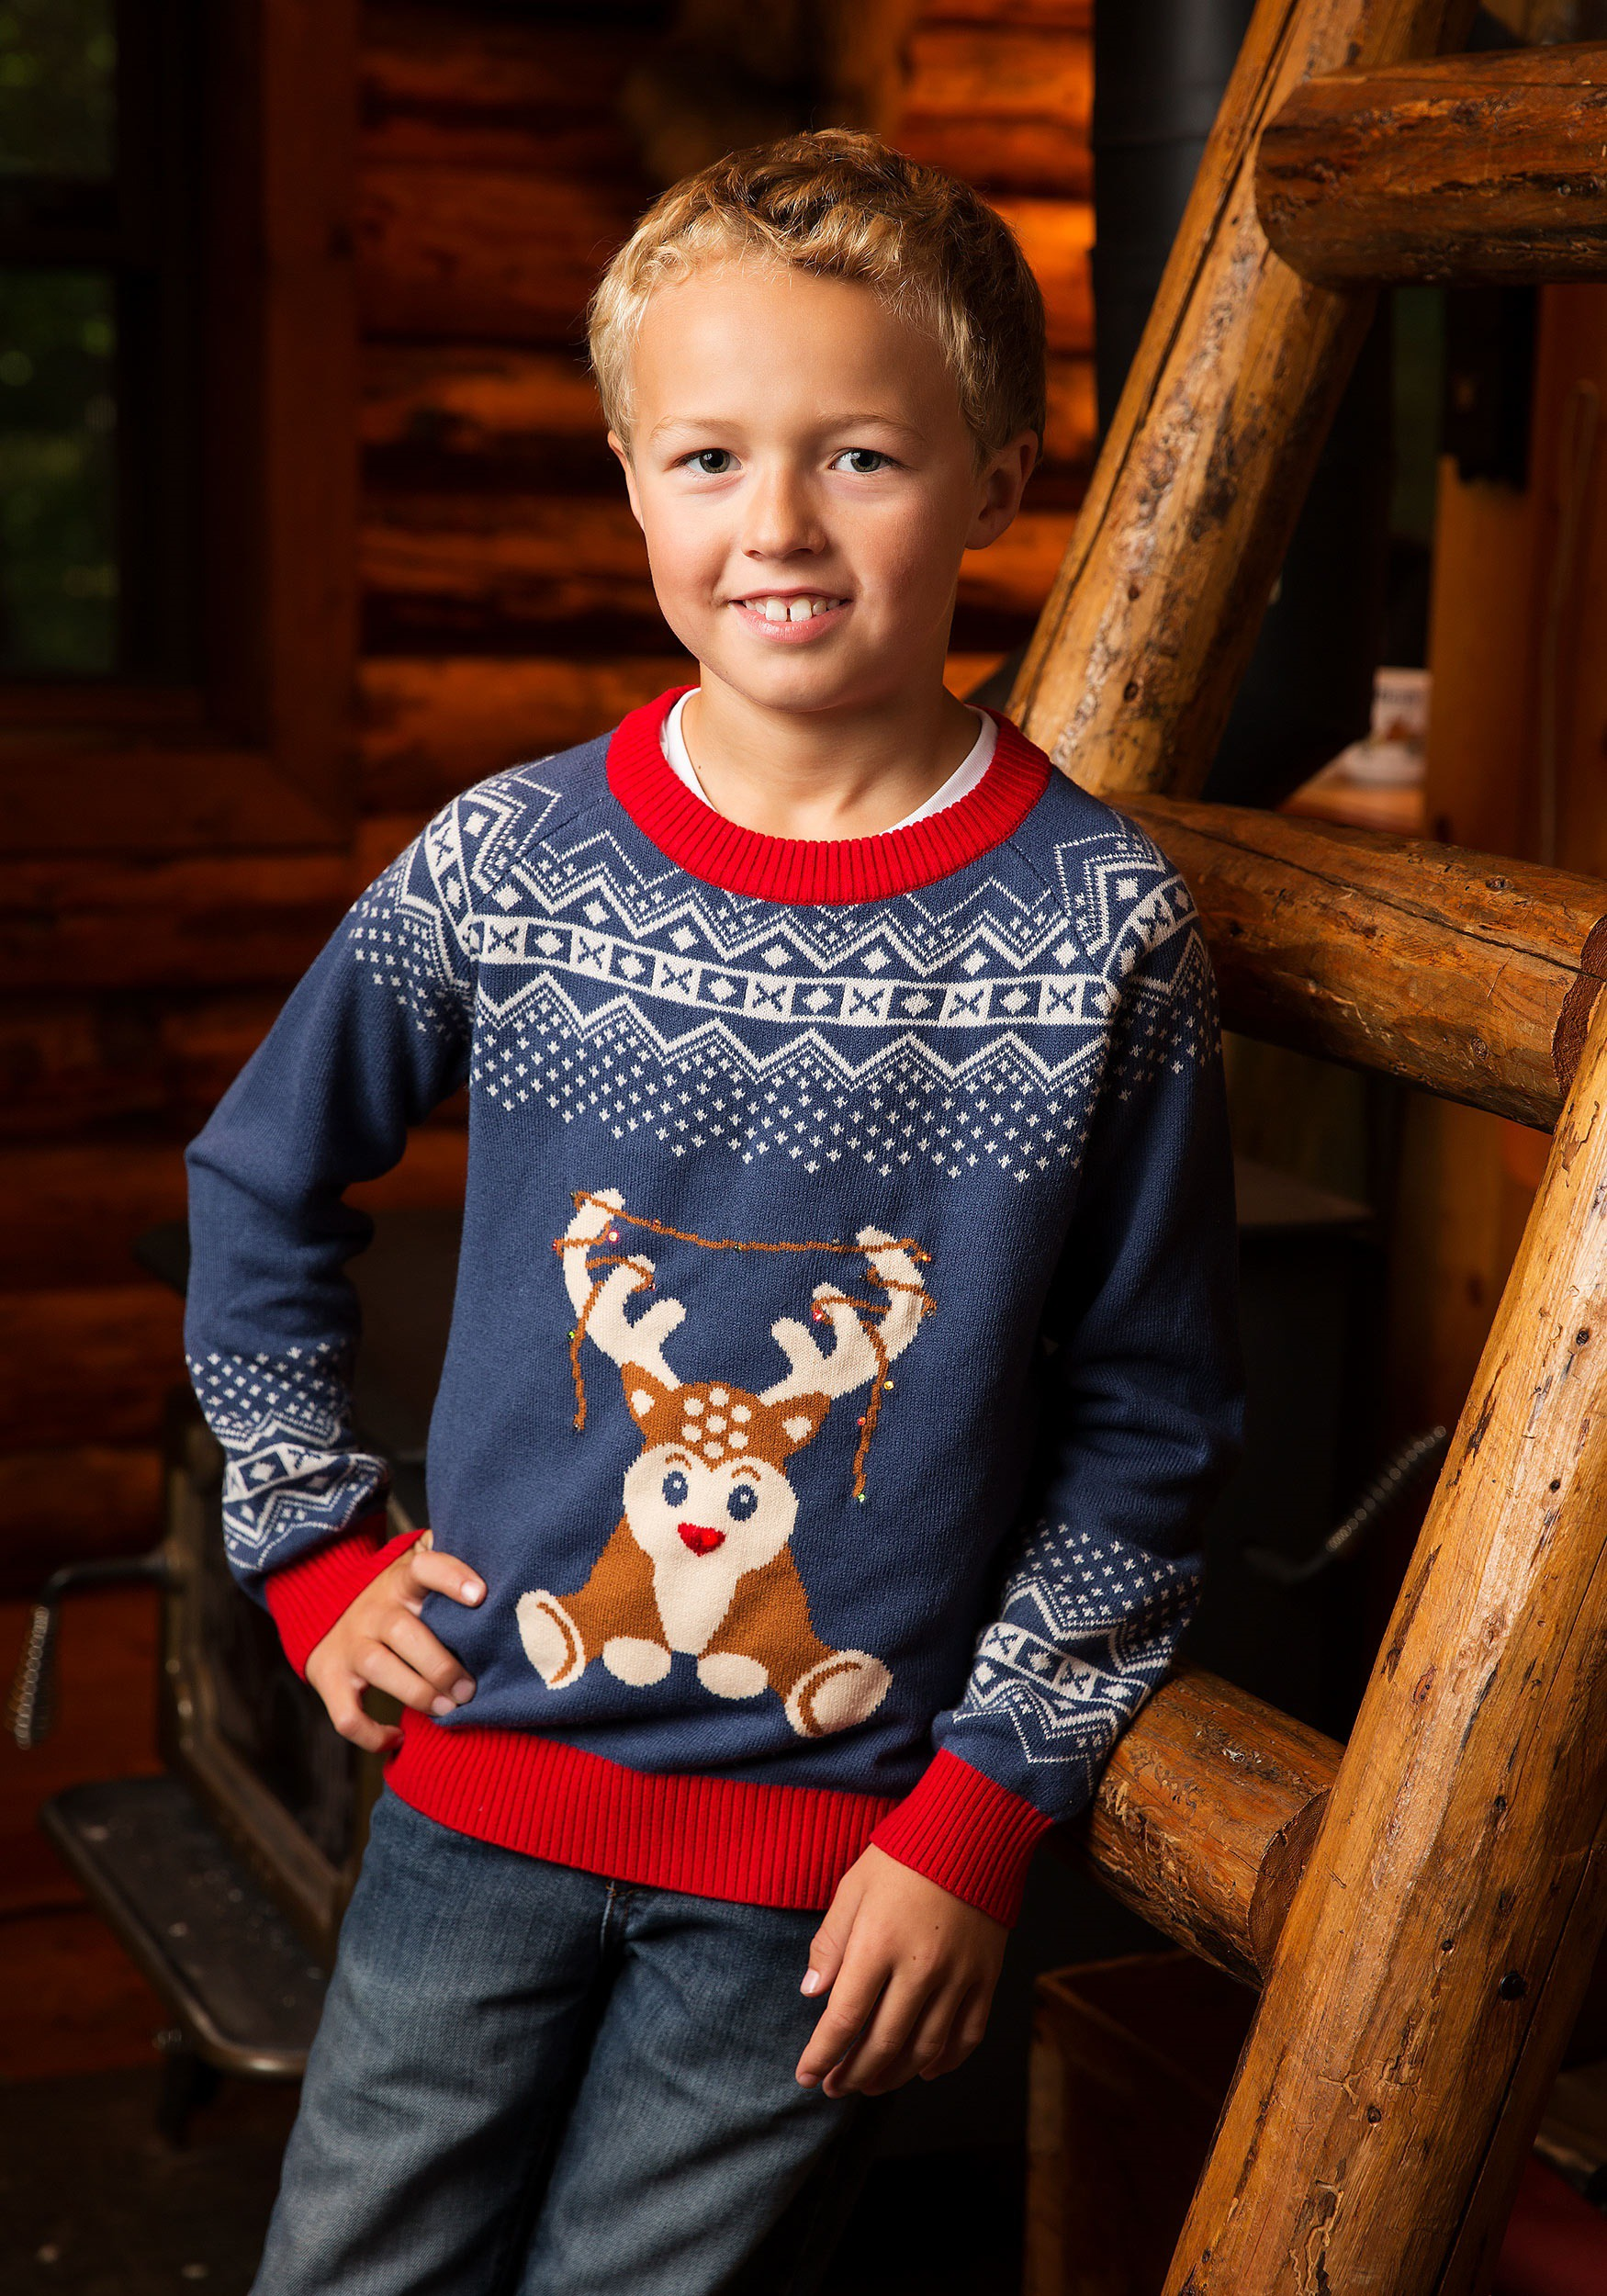 Bears Sweater with reindeer on front will fit boyds